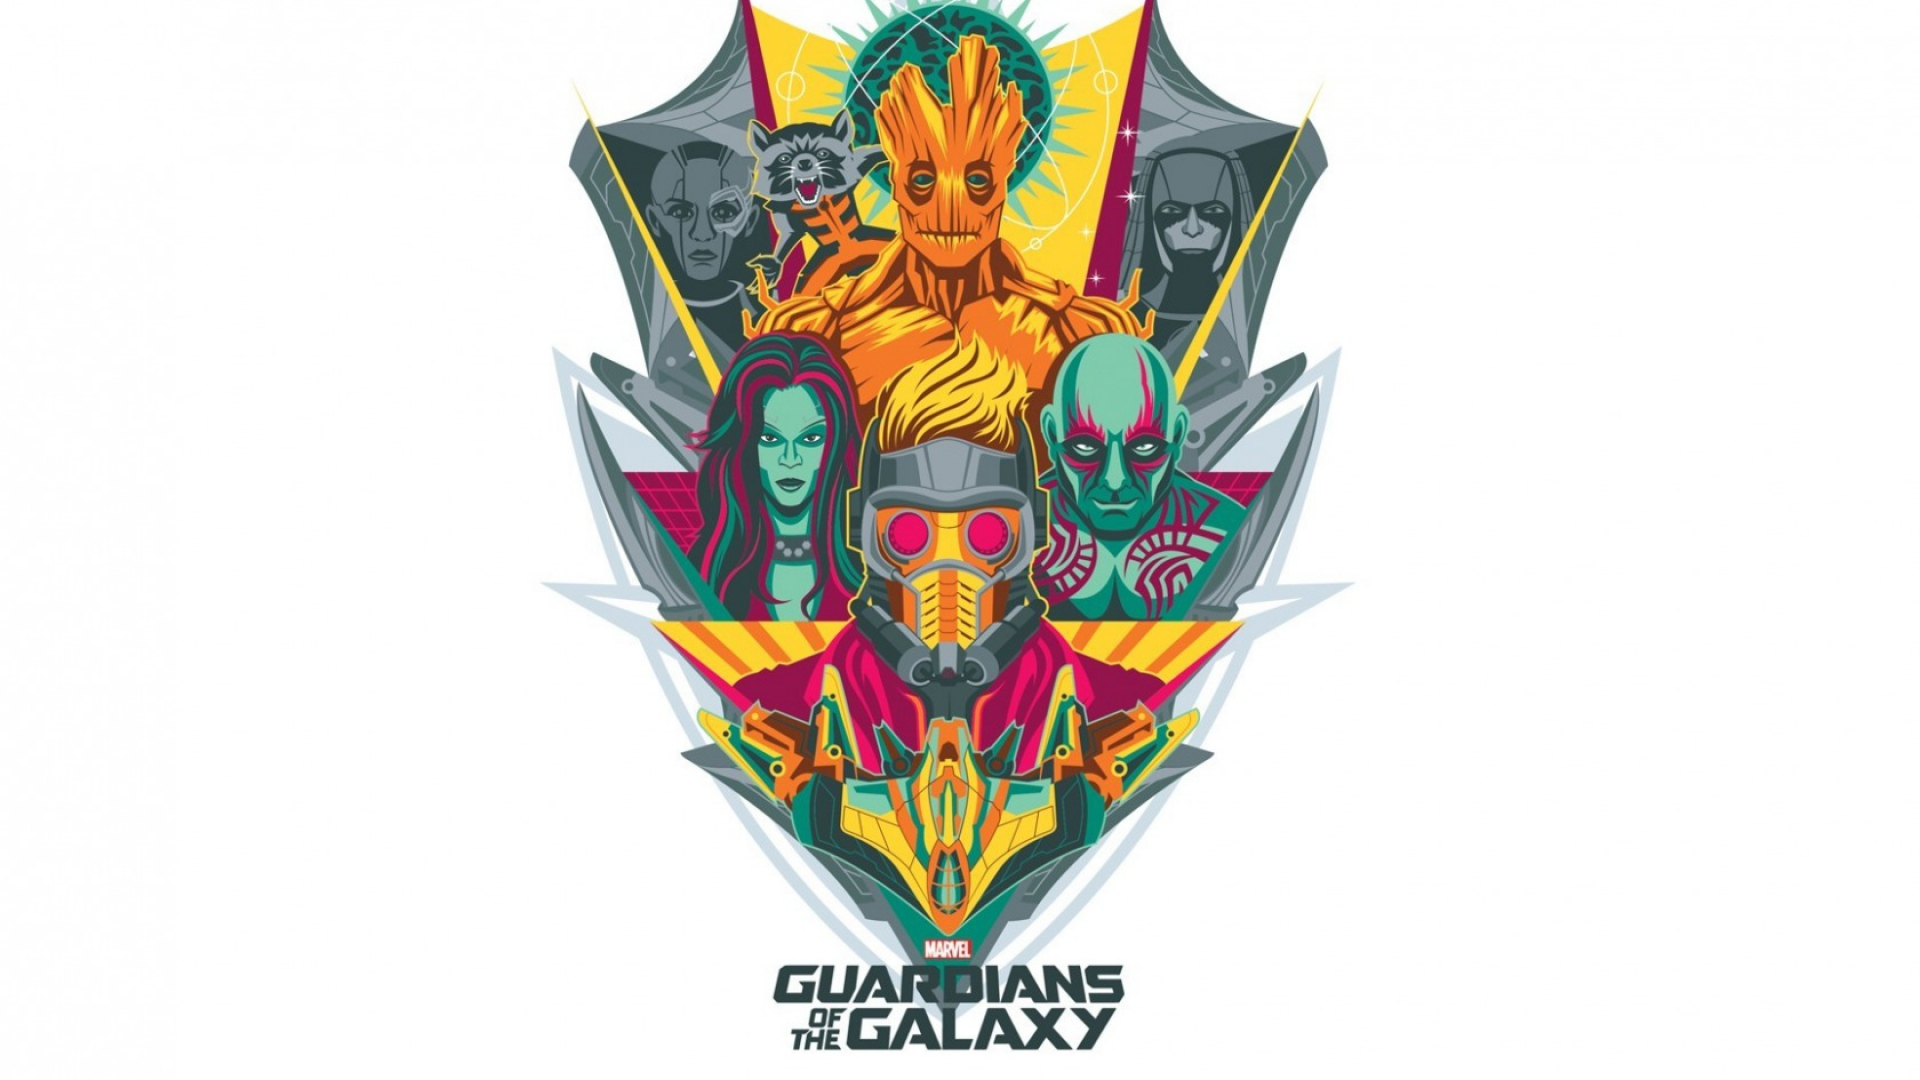 HD Wallpaper Guardians Of The Galaxy Marvel